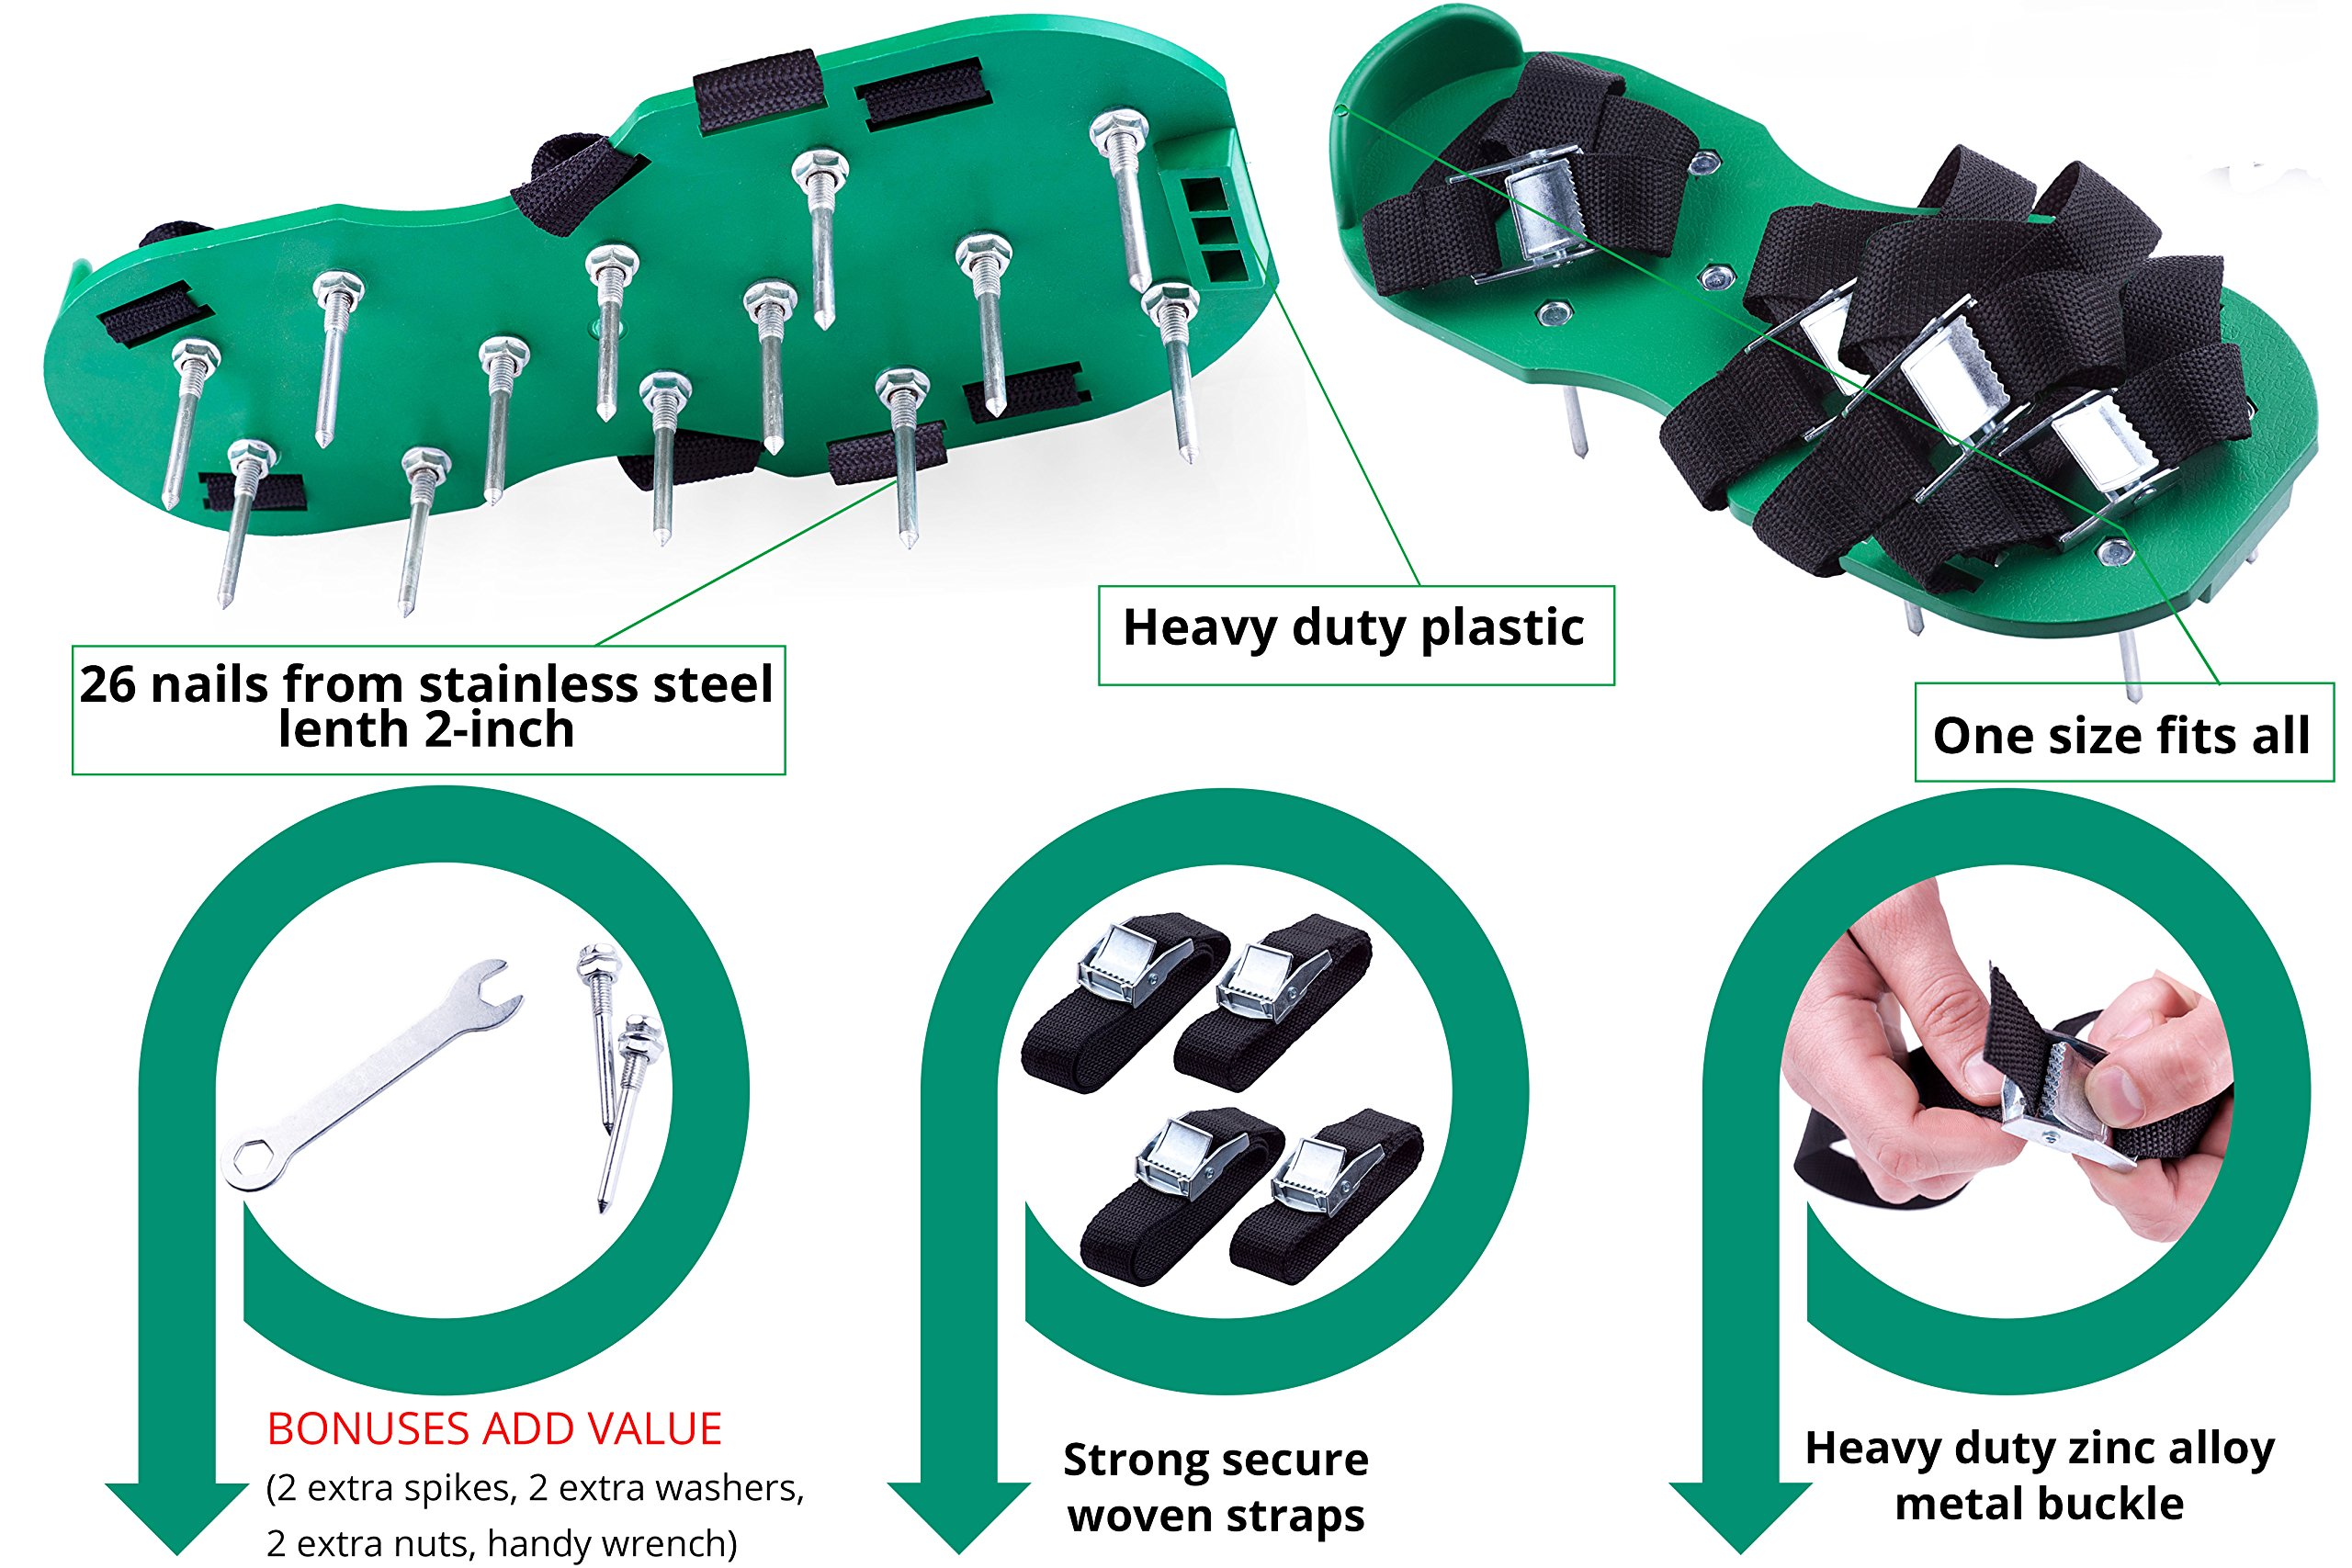 Professional Lawn Aeration Sandals with 4 Adjustable Durable Straps for Effective Treating, Aerate, Fertilize Lawn Soil-Lawn Aerator Shoes with Metal Buckles for Greener and Healthier Grass,Yard Care. by Skilur P (Image #2)